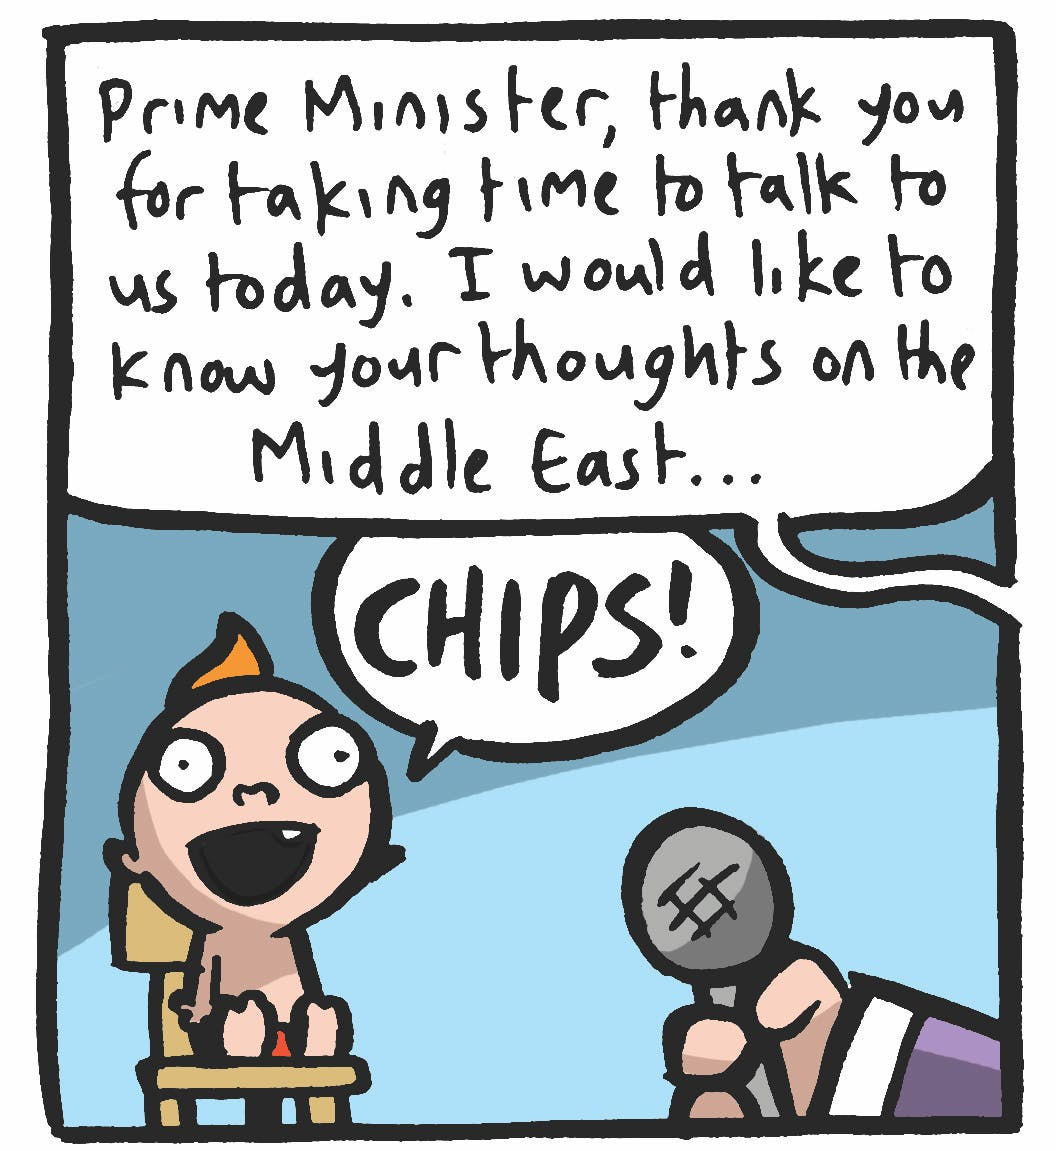 With our new Prime Minister!